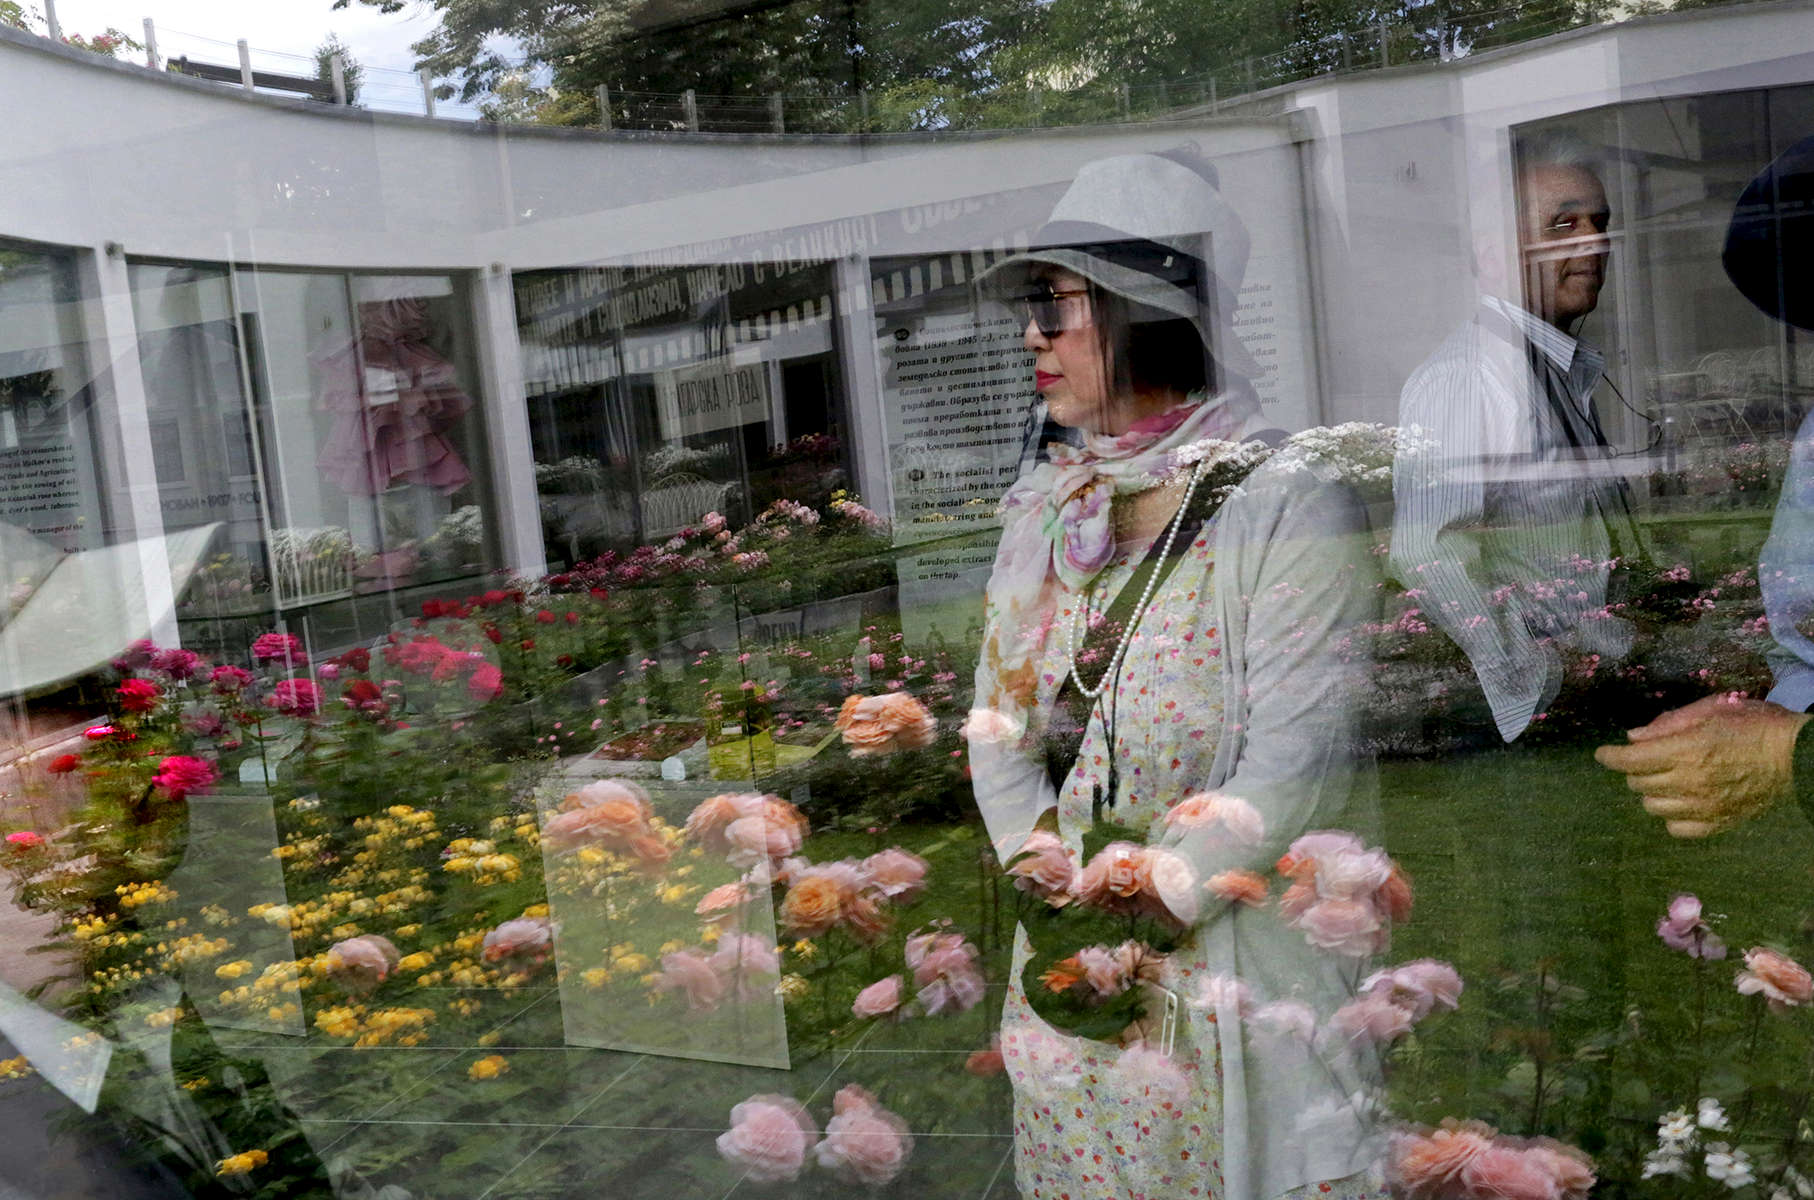 Tourists' reflections are seen on a window at the Rose Museum, which is located in the Park Rose Garden, on May 29, 2018 in Kazanlak, Bulgaria, the town regarded as the heart of Bulgaria's Rose Valley. Kazanlak boasts a Rose Festival with traditional rose-picking and distillation in the mountains, folk dances, roses ensconced in cakes, soaps, jewelry, wine and rakia (a regional 80-90 proof fruit brandy,) and even a parade in honor of its very own Rose Queen, picked from a pool of high school graduates. Photo by: Yana Paskova for National Geographic Traveler